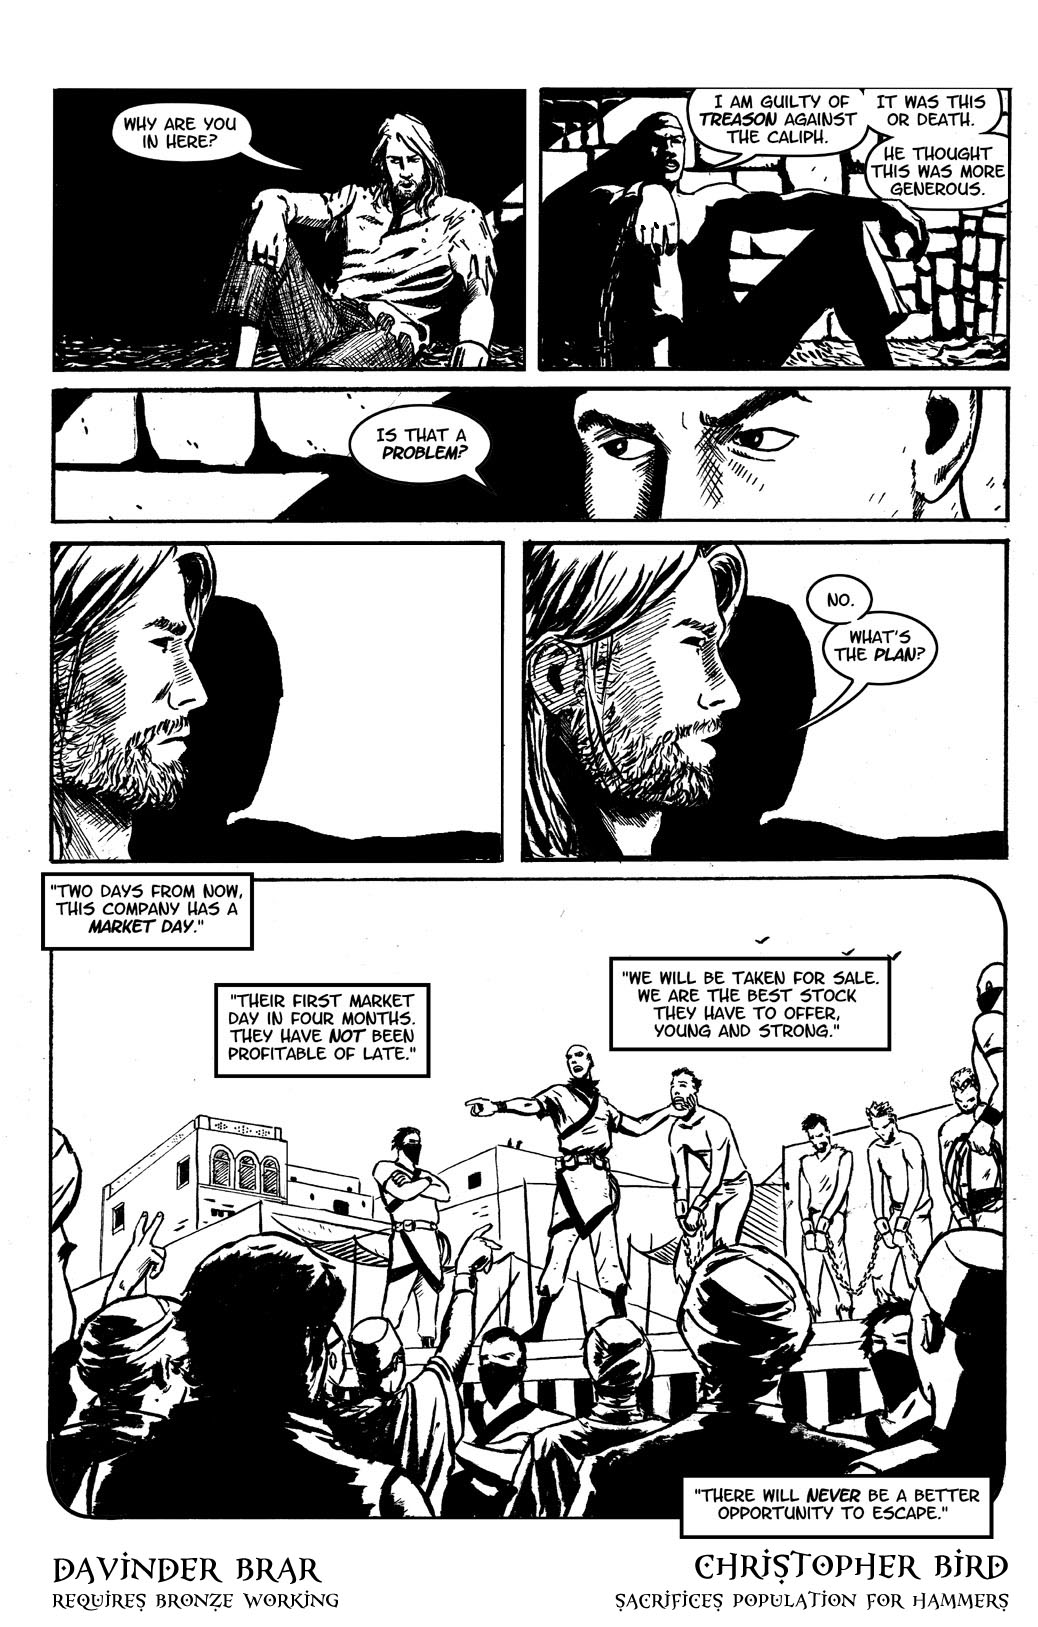 Book 2, page 3